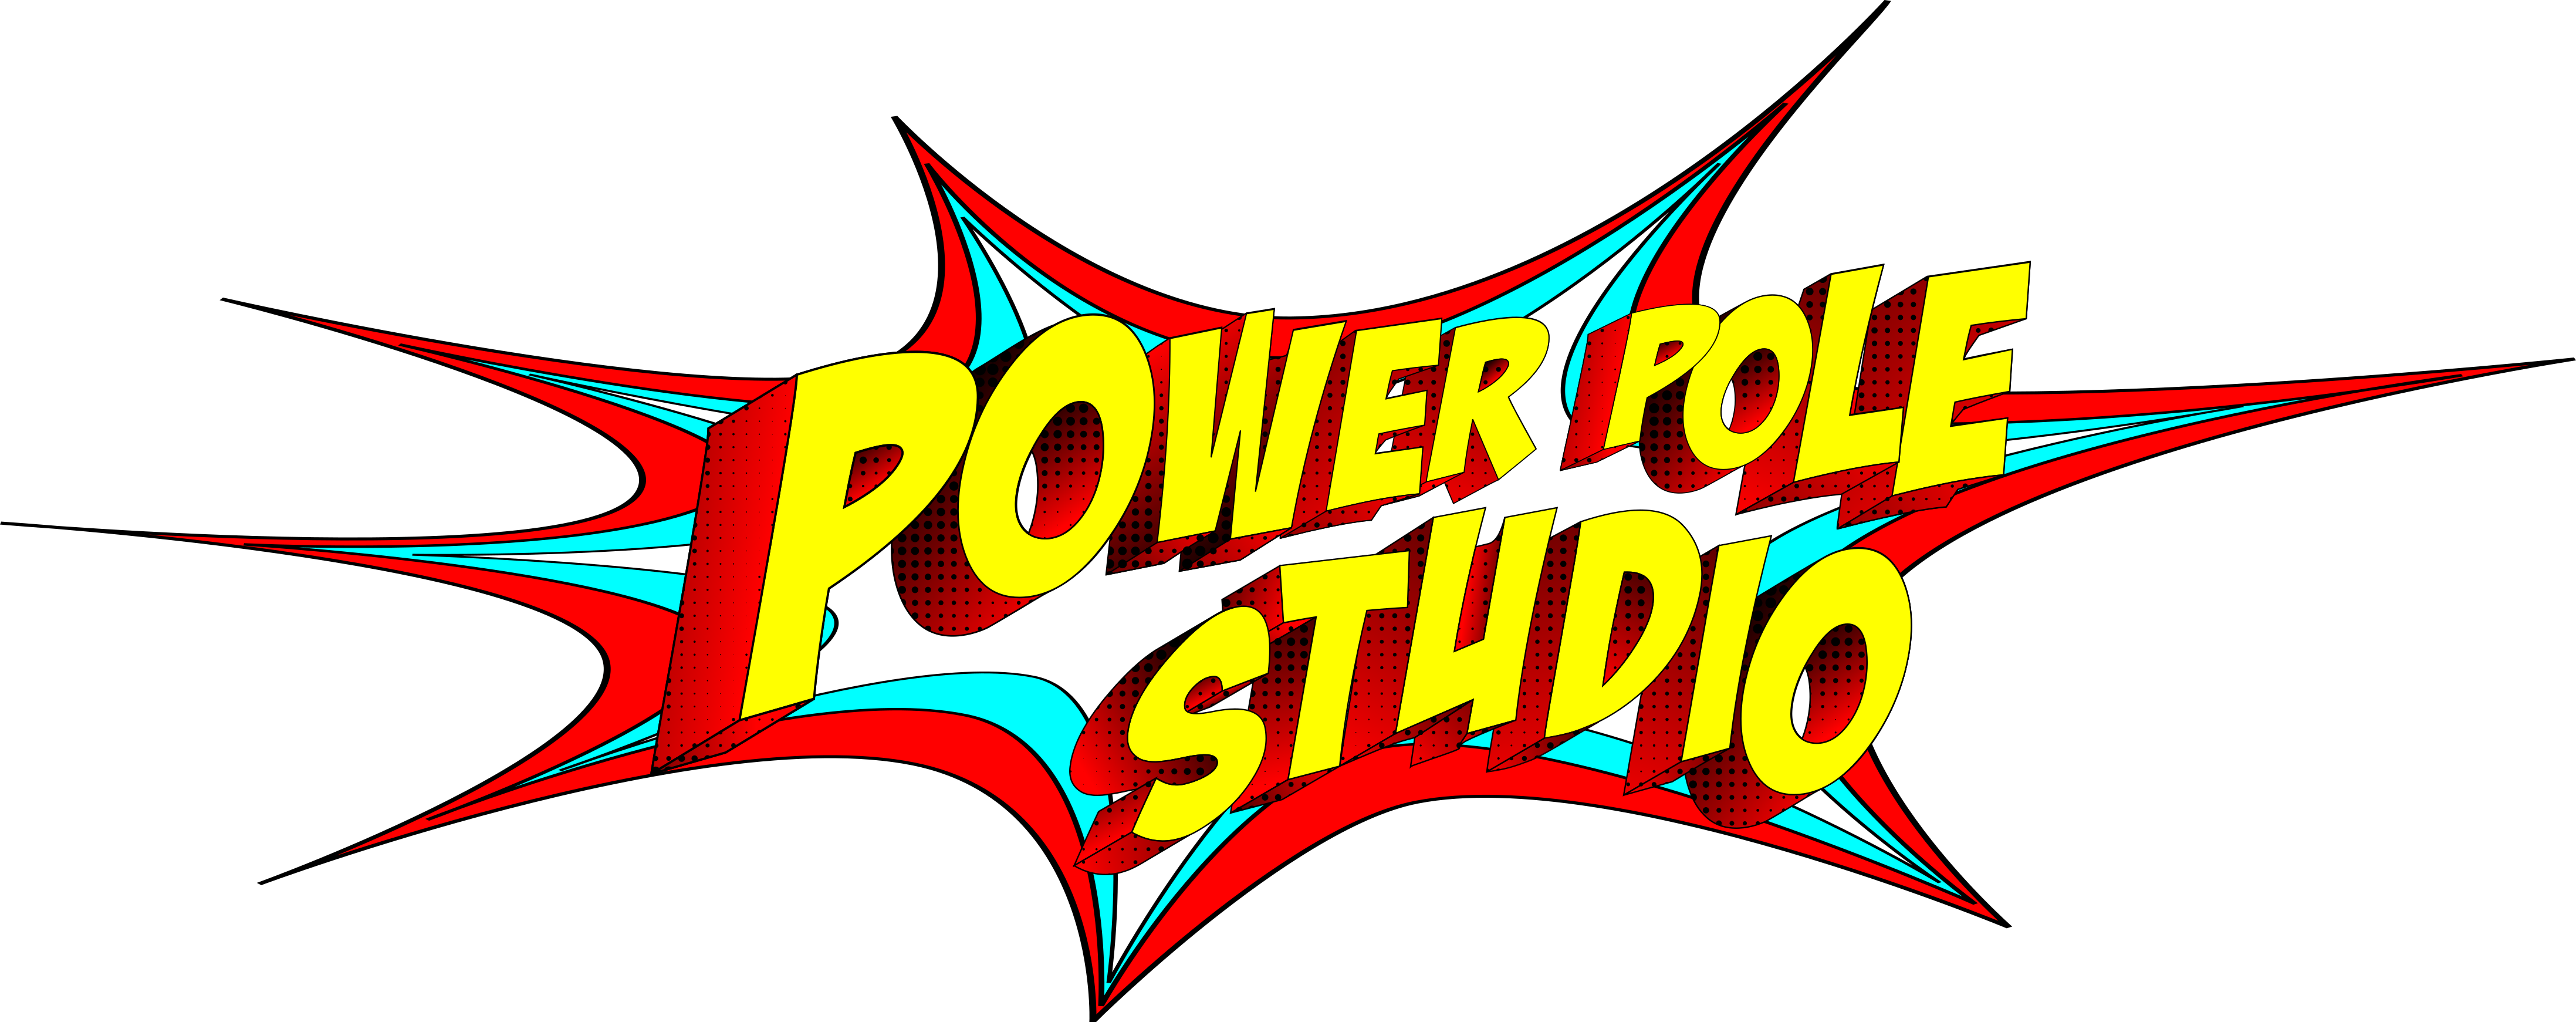 Power Pole Studio